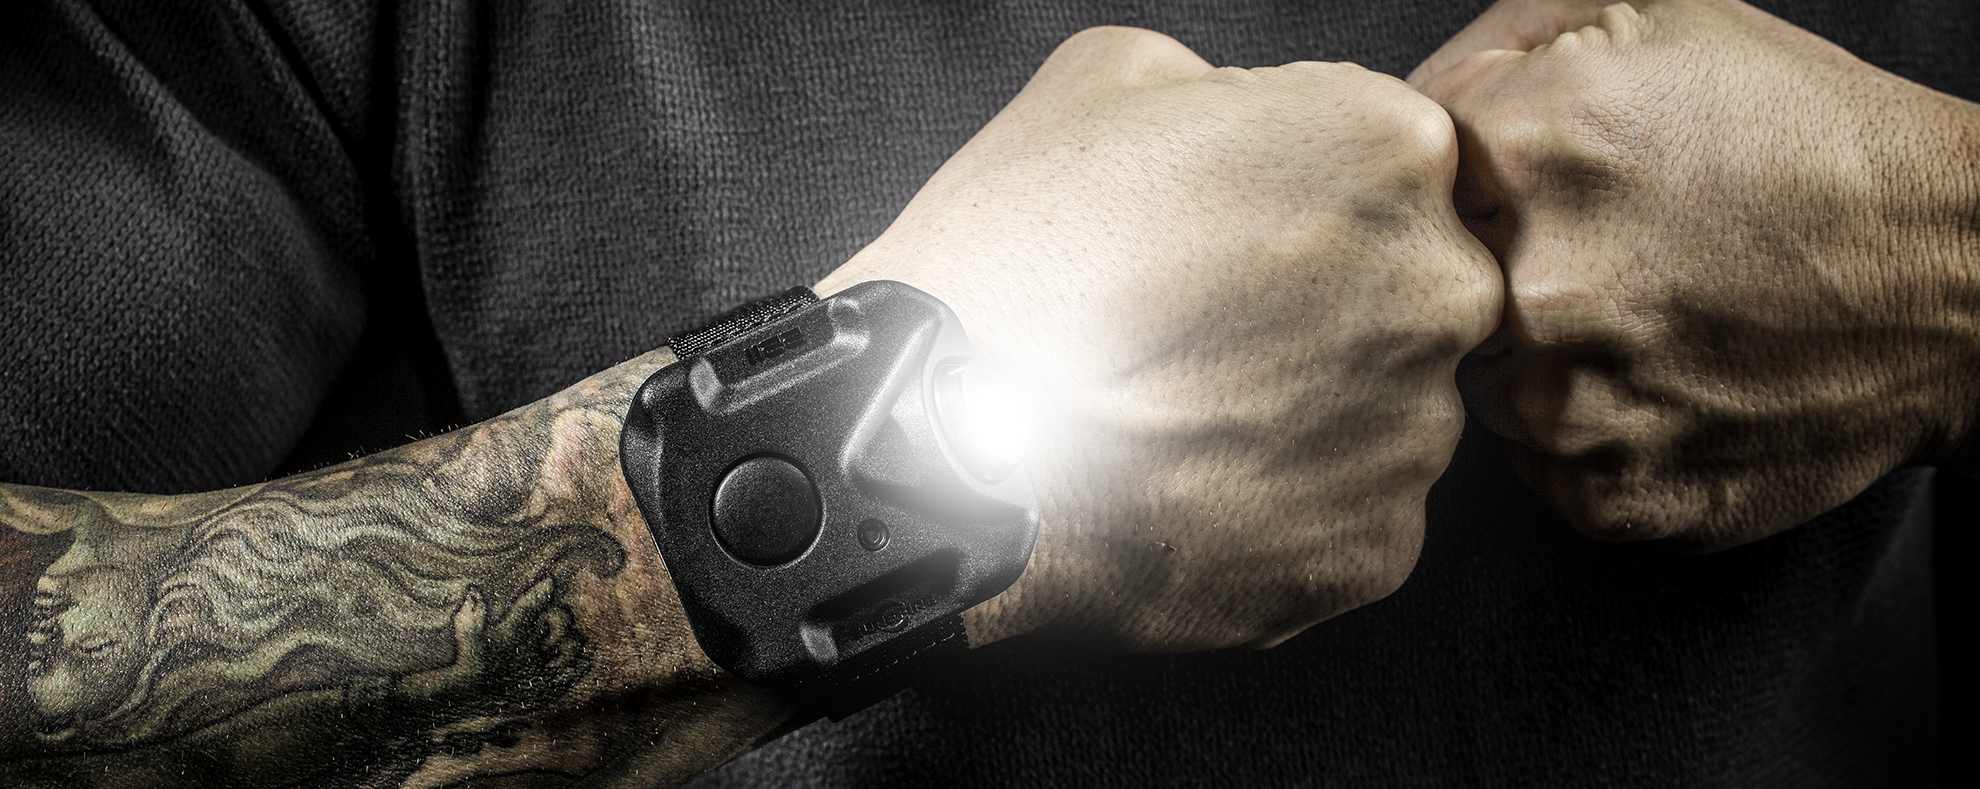 SureFire 2211 Wristlight hands-free lighting solution